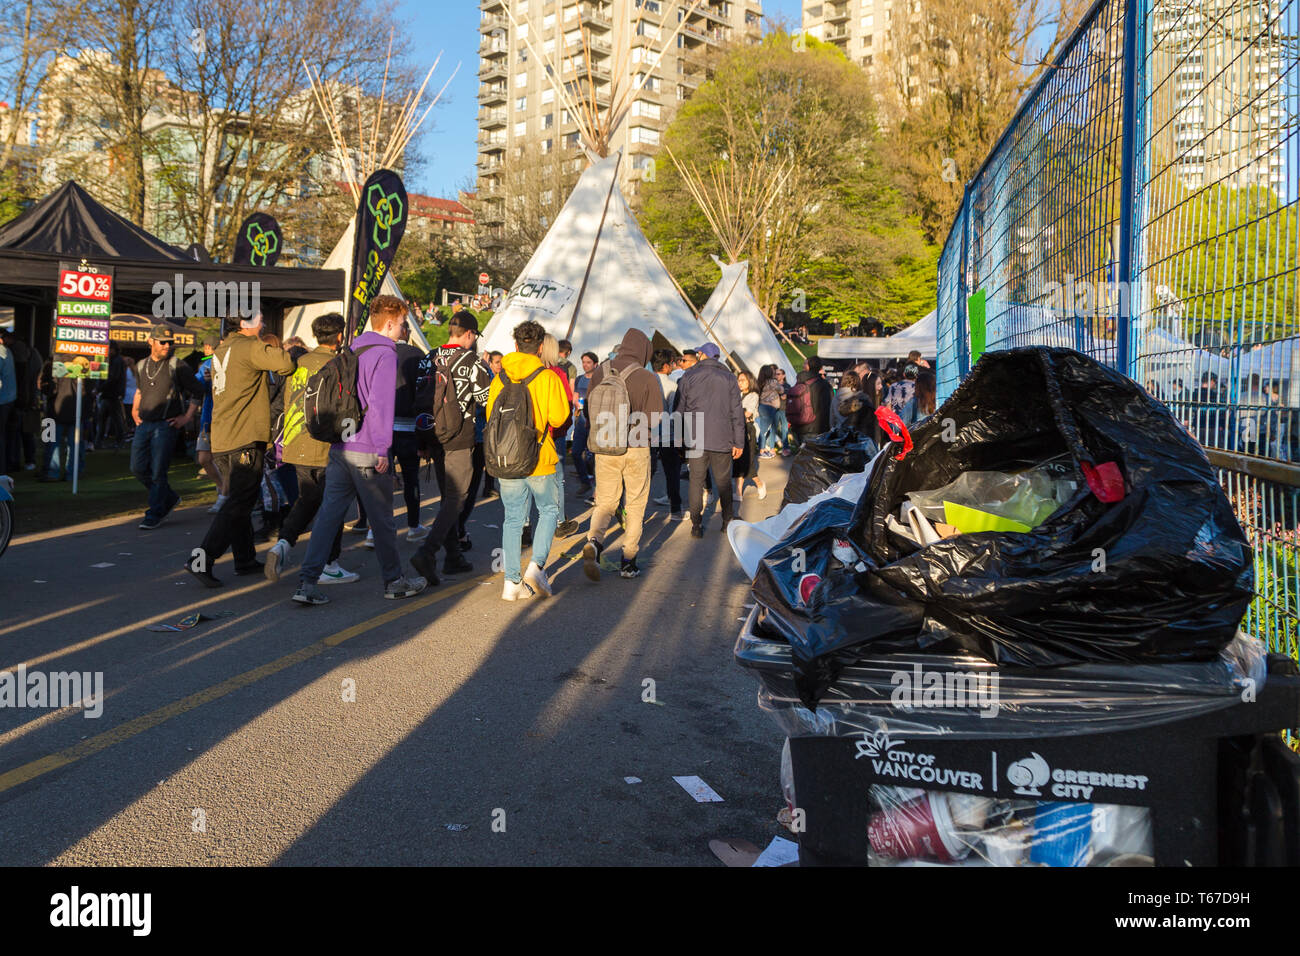 VANCOUVER, BC, CANADA - APR 20, 2019: Garbage left behind by